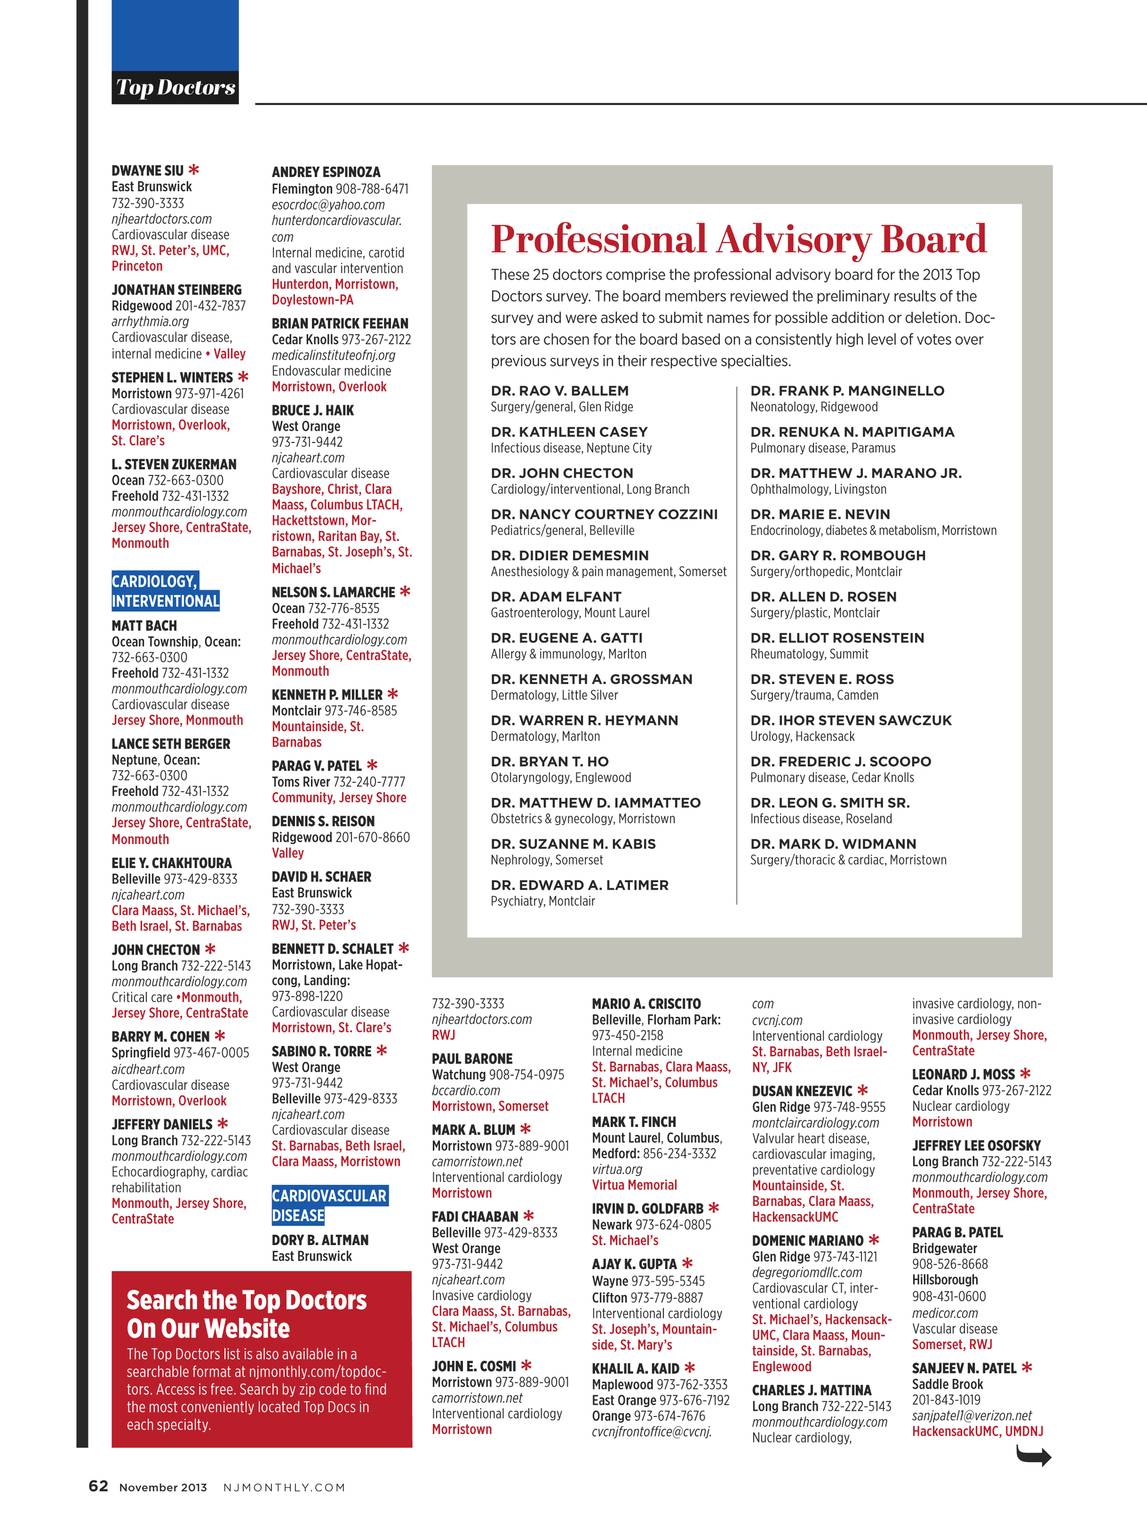 NJ Monthly - November 2013 - page 61